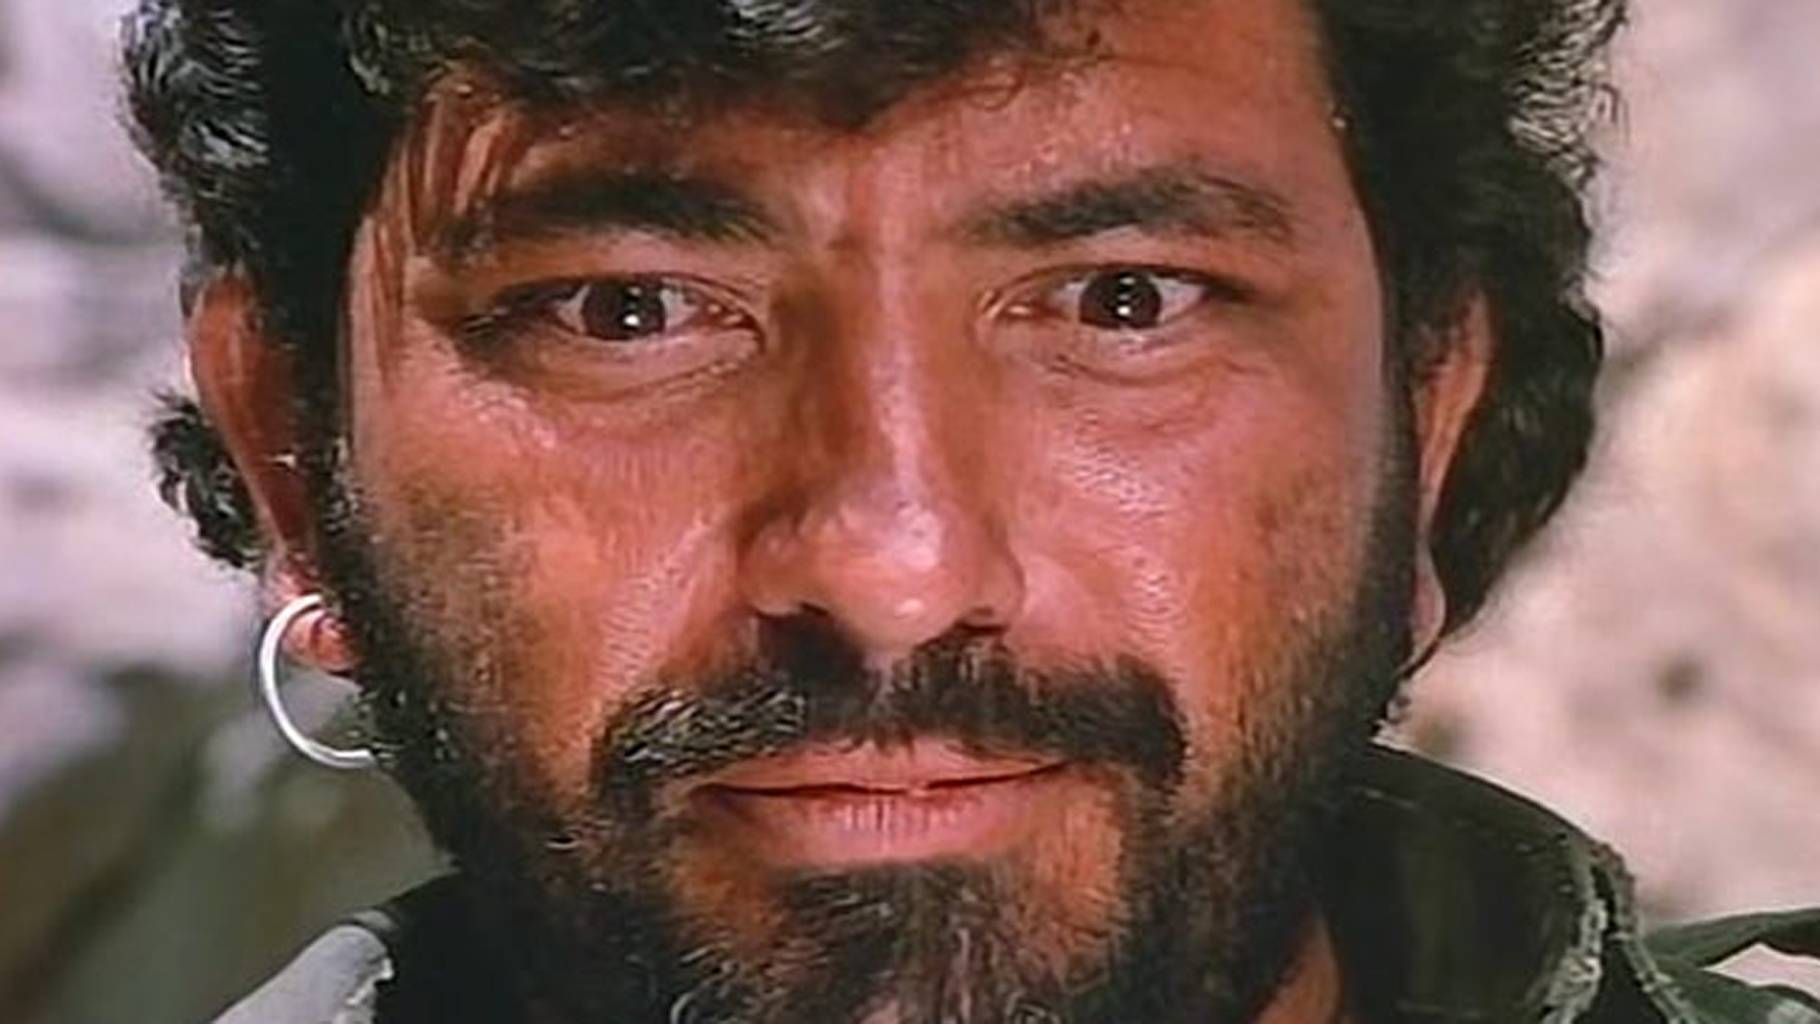 Gabbar Singh BEst Dialogues in Sholay - HD Wallpaper Amjad Khan